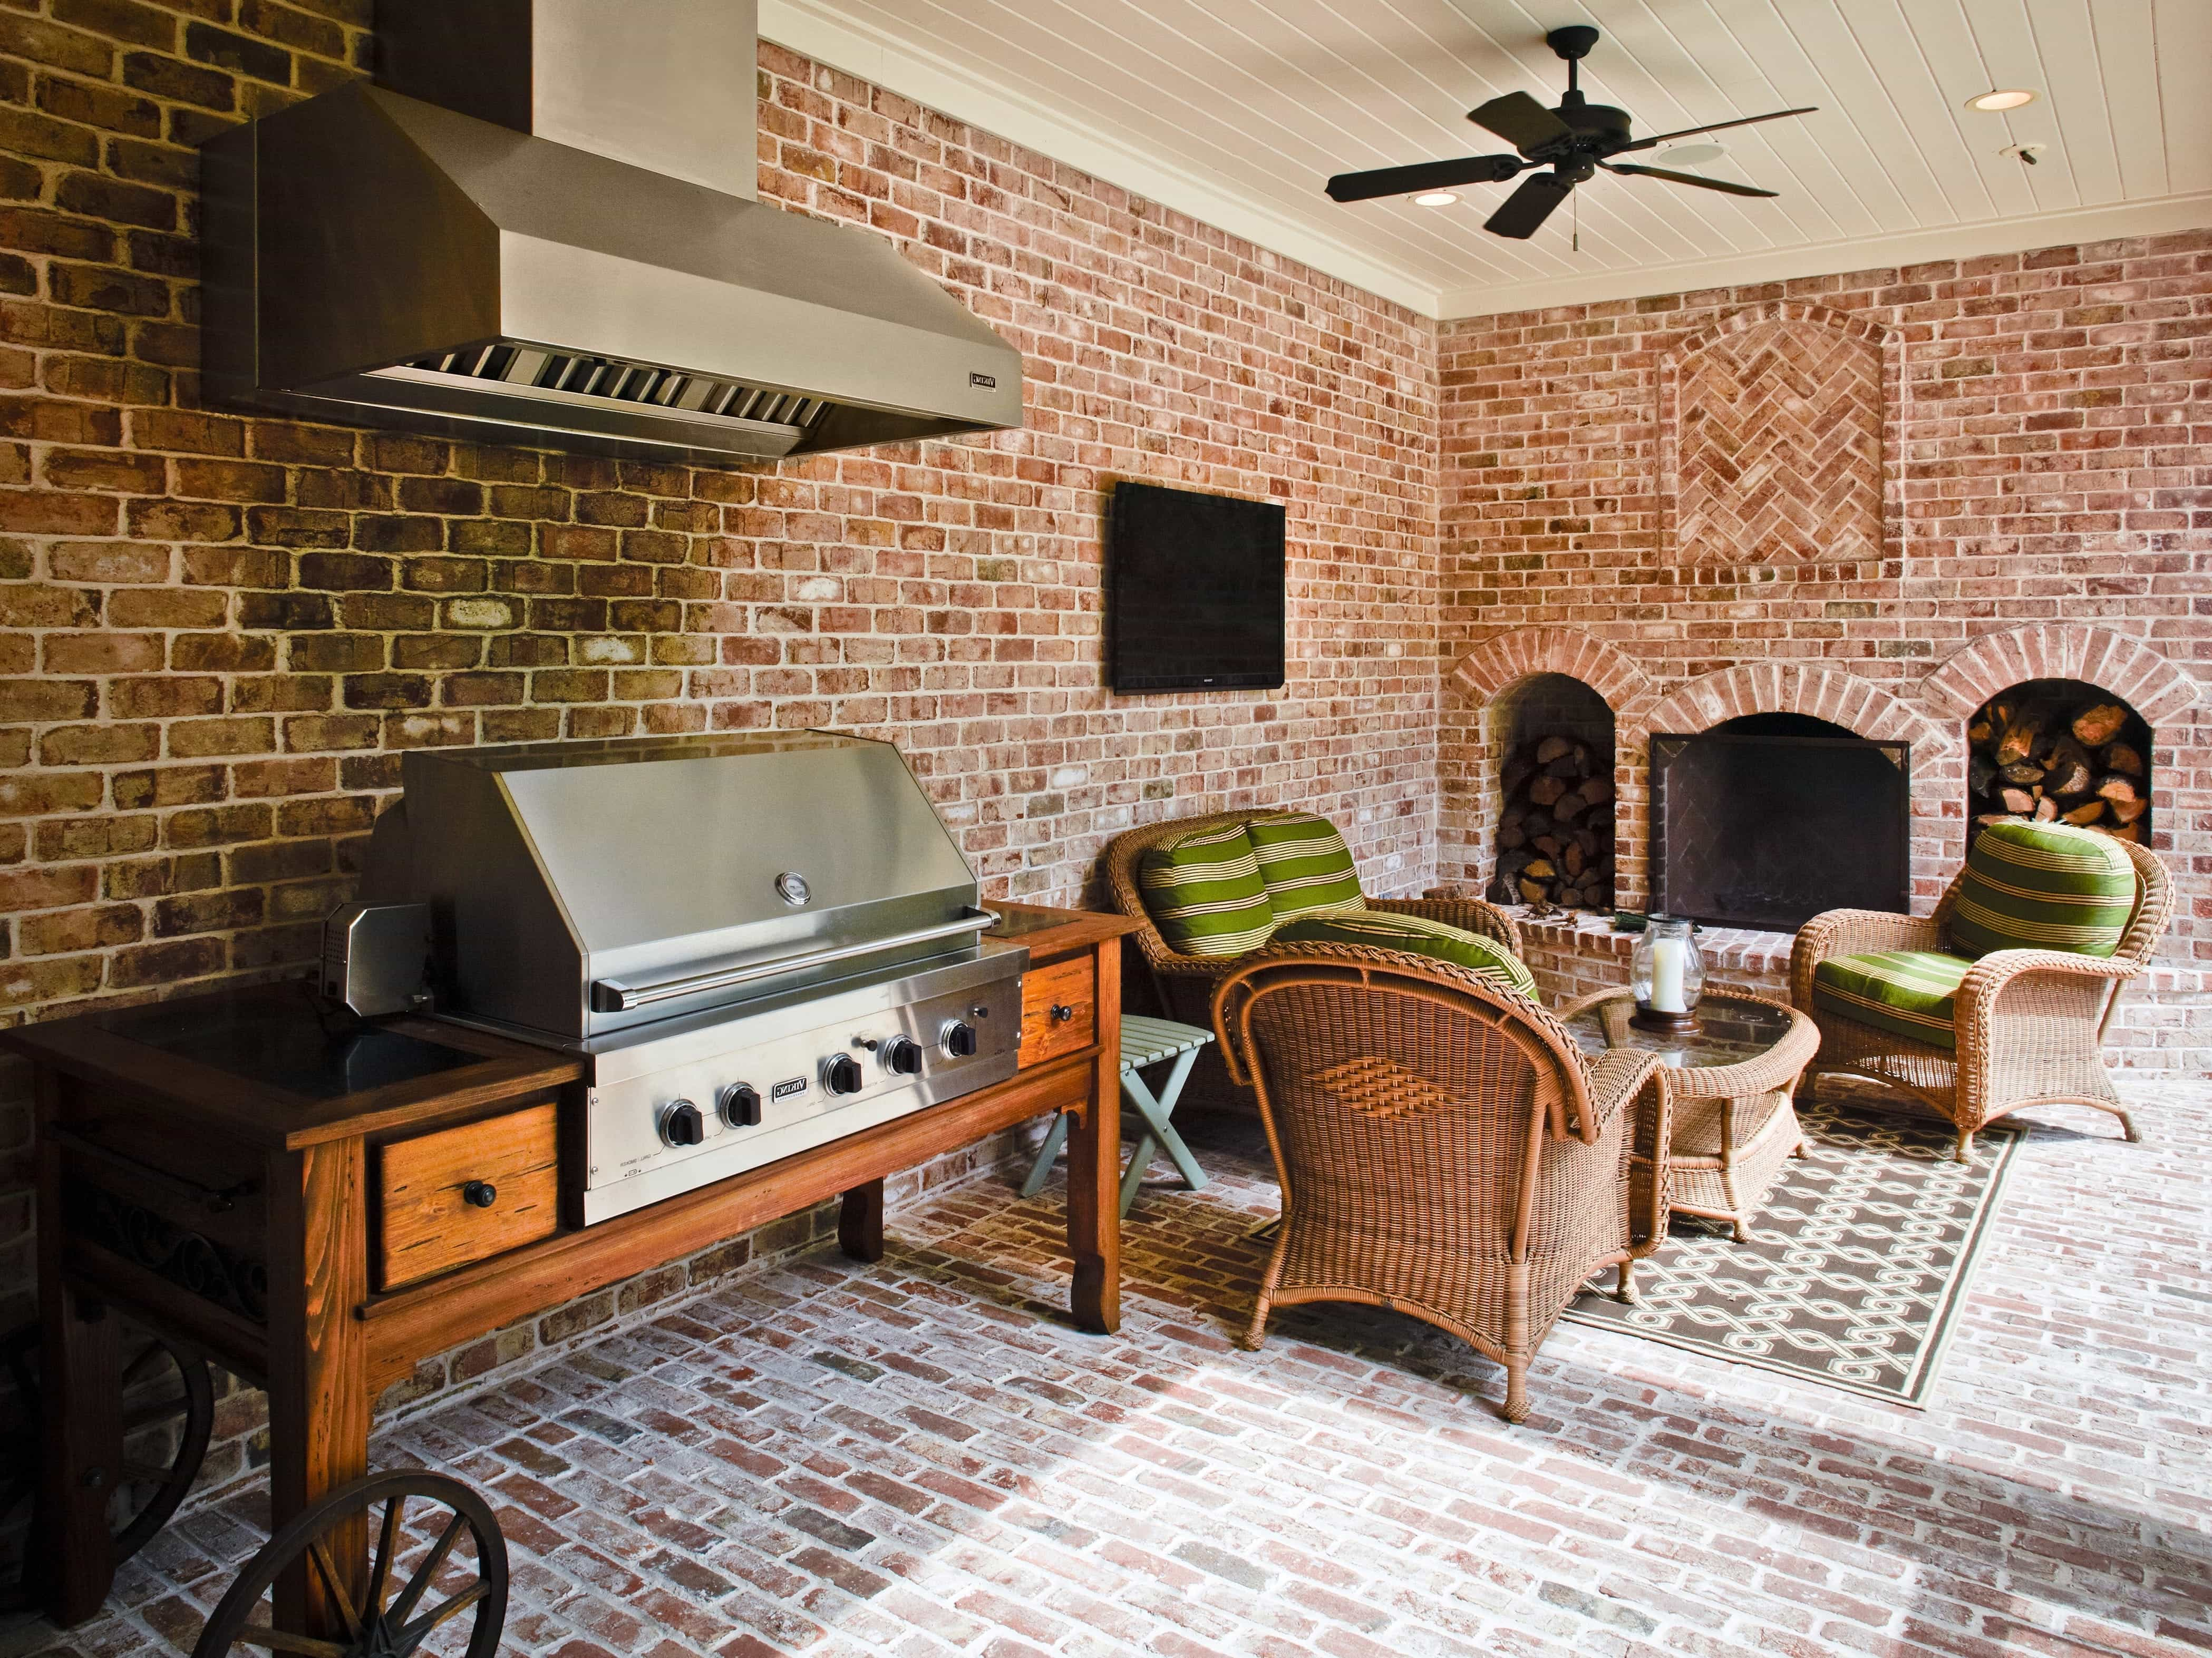 Brick Enclosed Patio With Gas Grill And Sitting Area (Image 3 of 30)